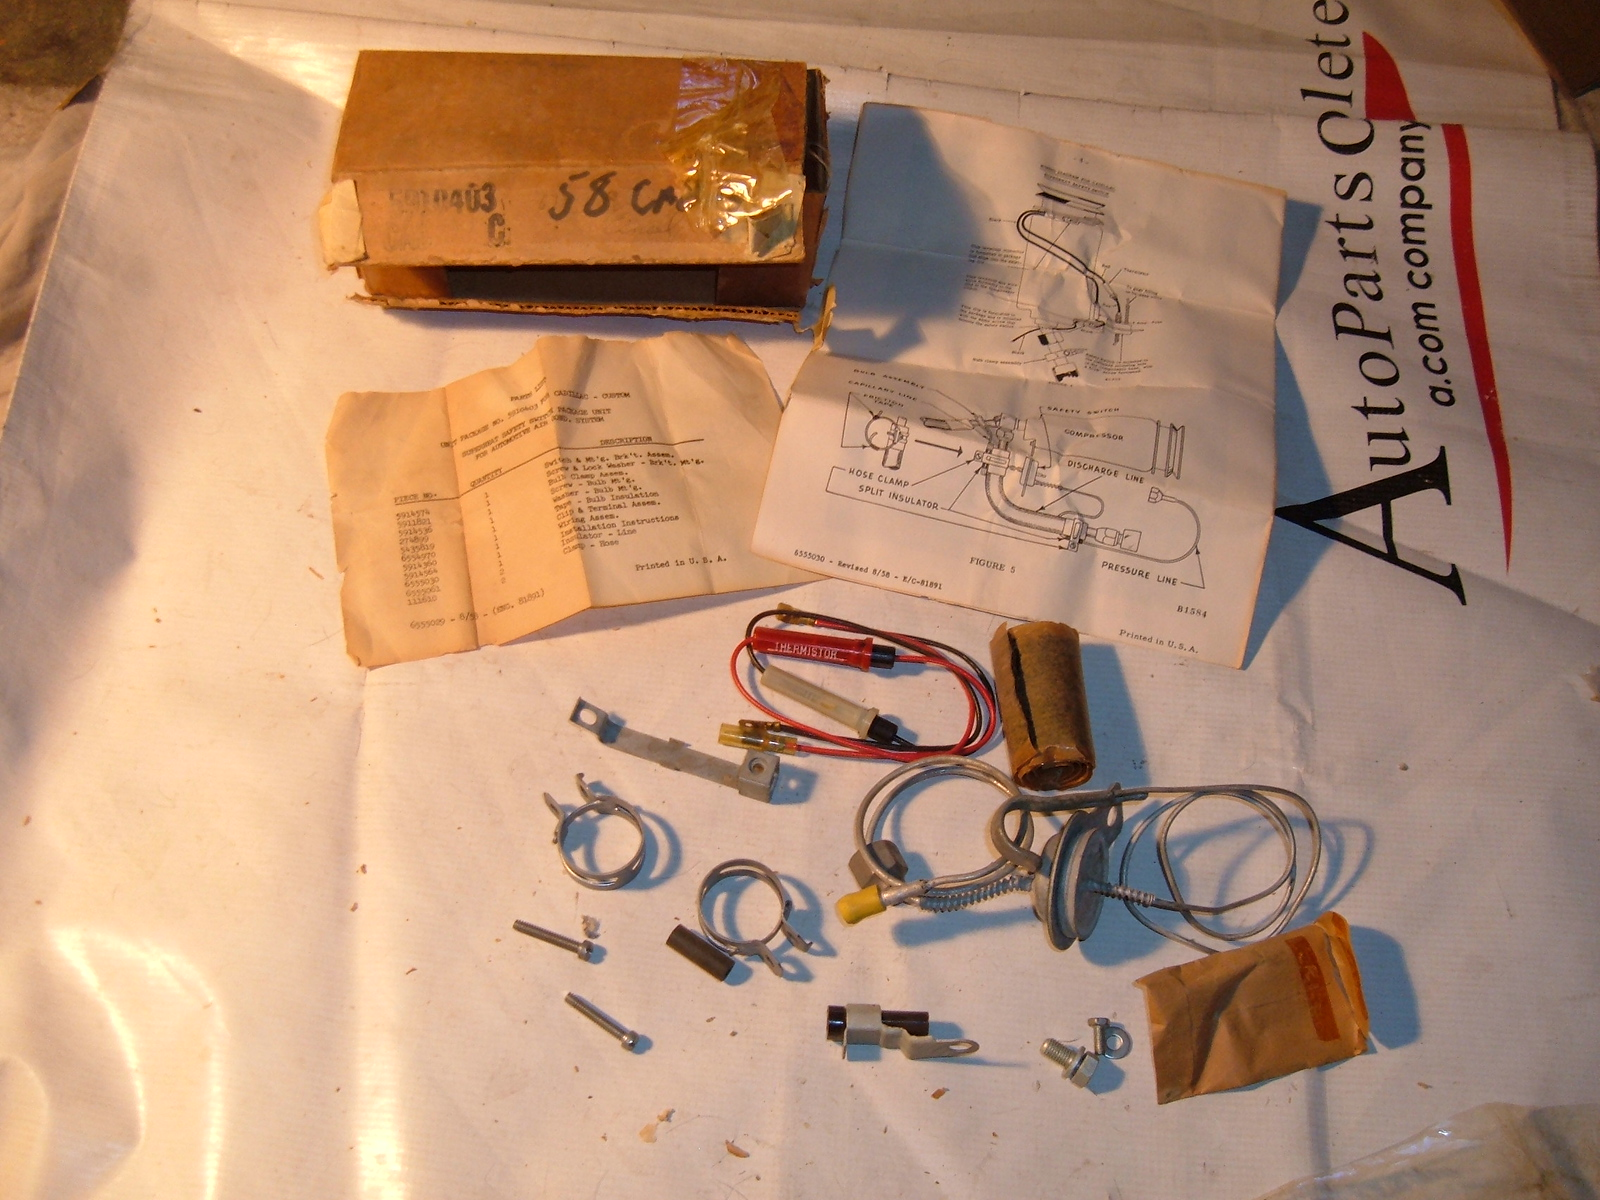 1958 cadillac air conditioning throttle suction valve nos gm 5910403 (5910403)